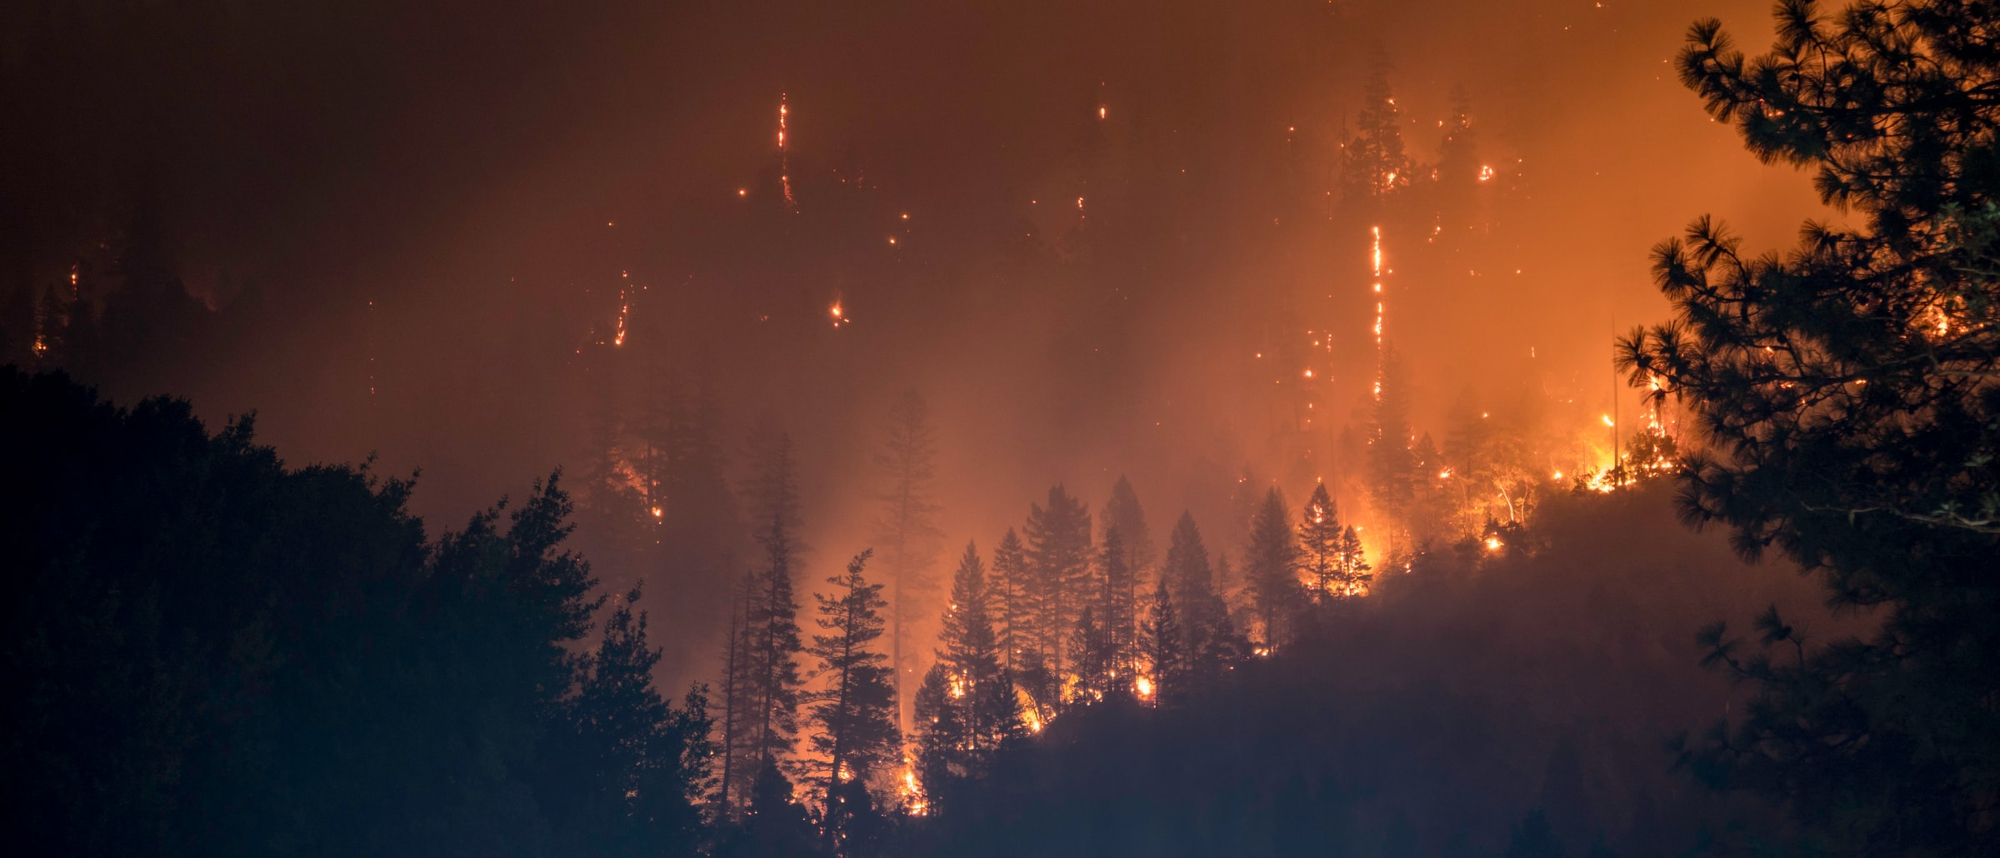 2021- A Summer of Extreme Heat and Wildfires